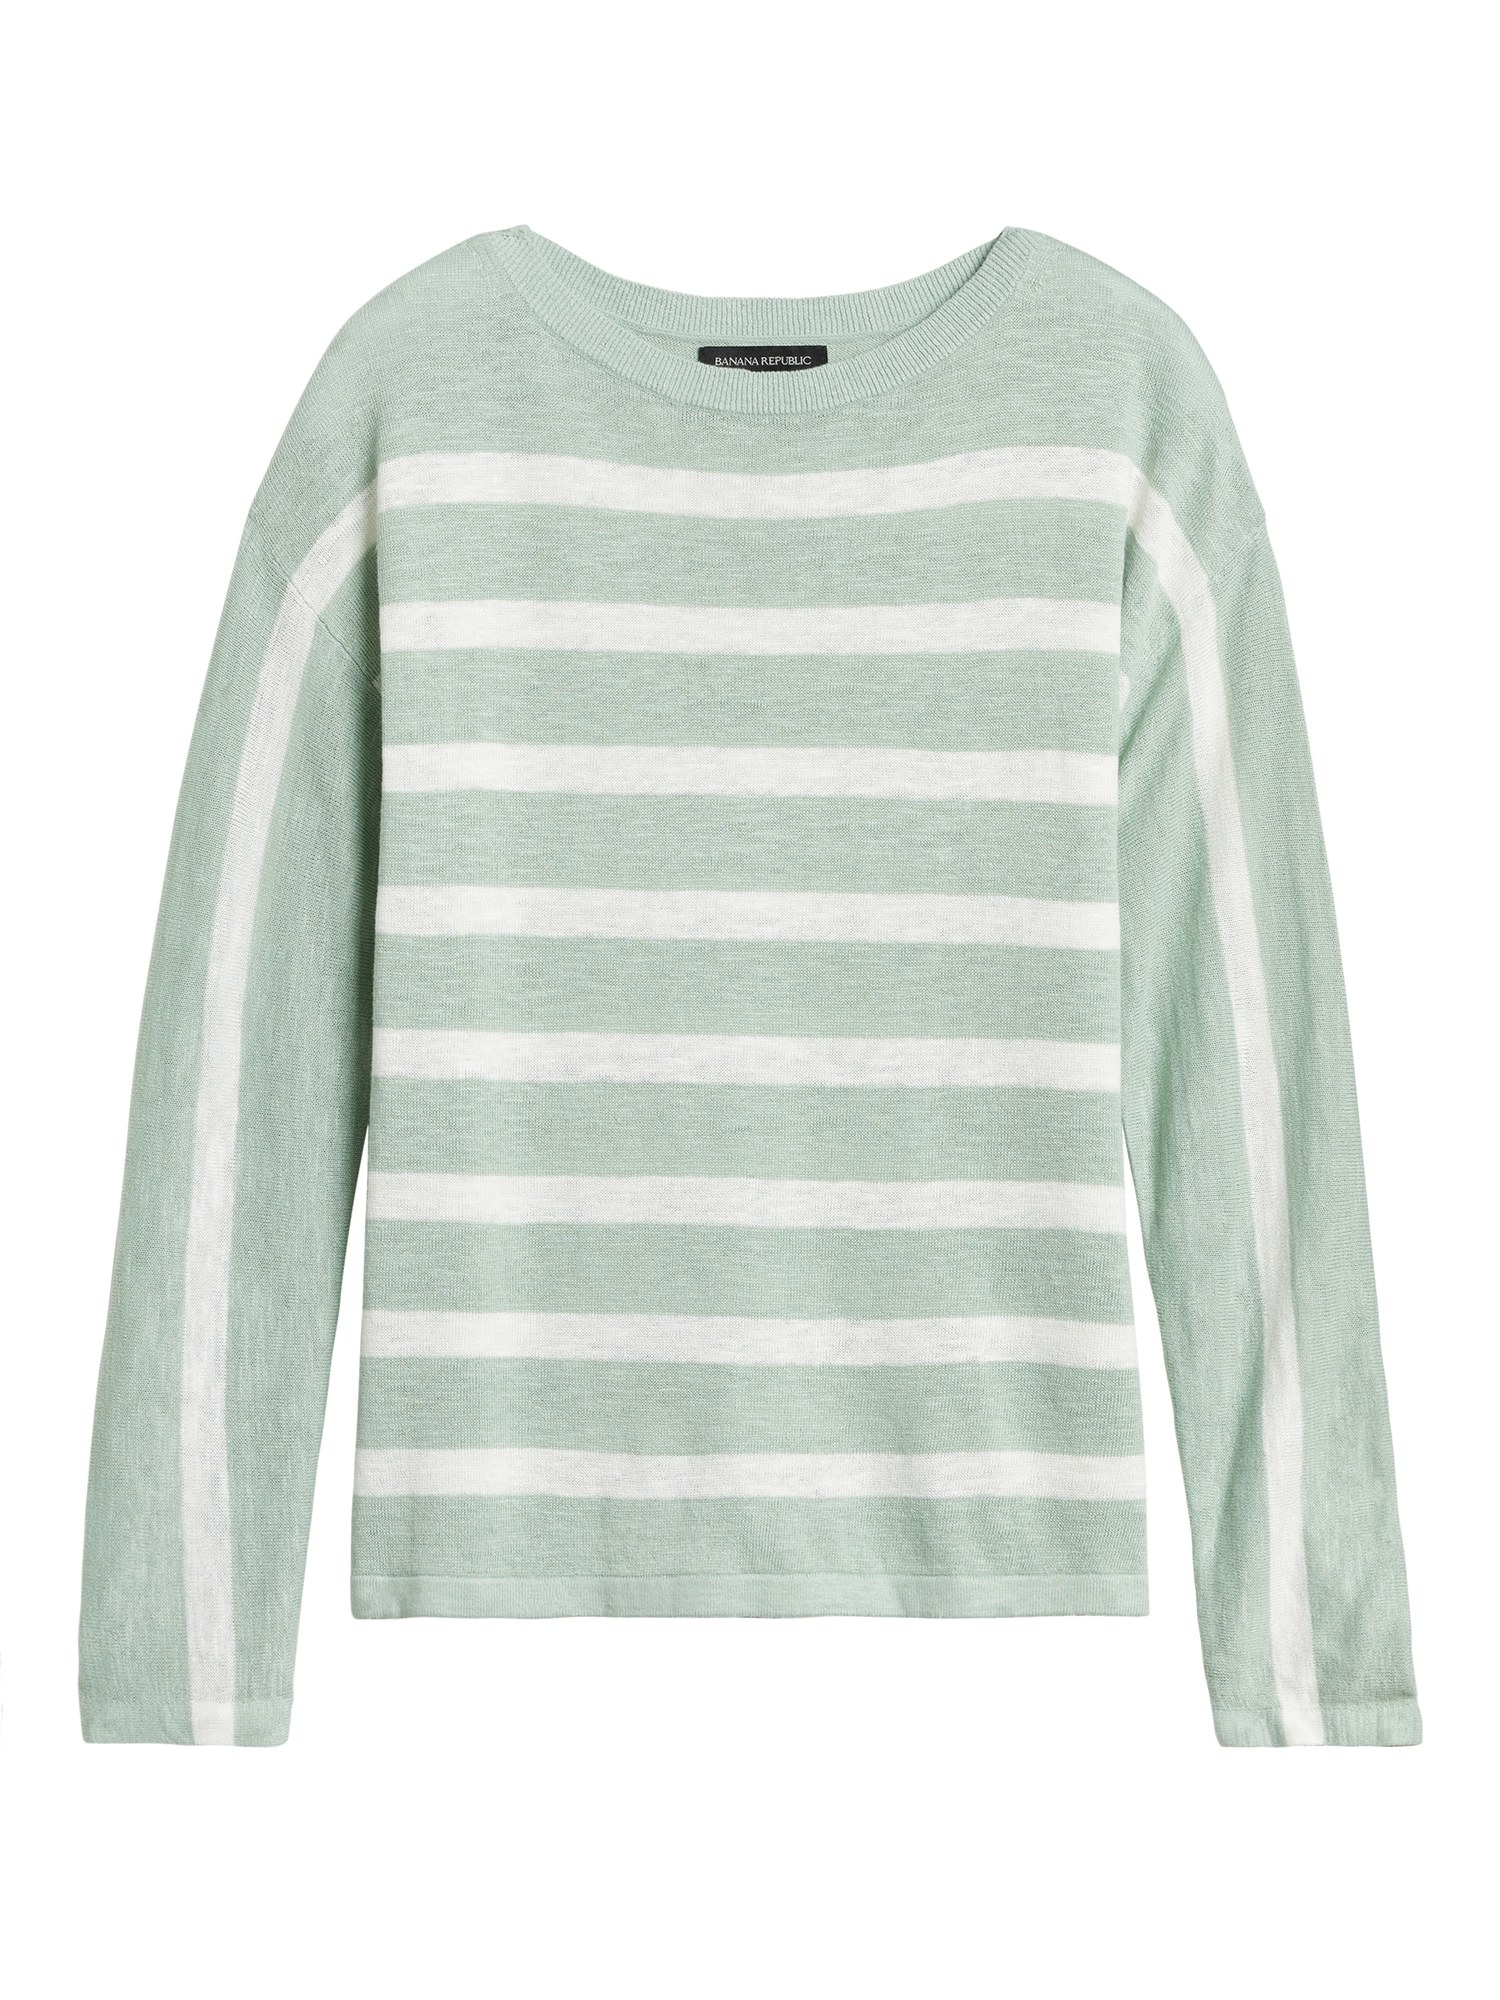 The scoop neck sweater with horizontal stripes across the body and vertical stripes down the sleeves